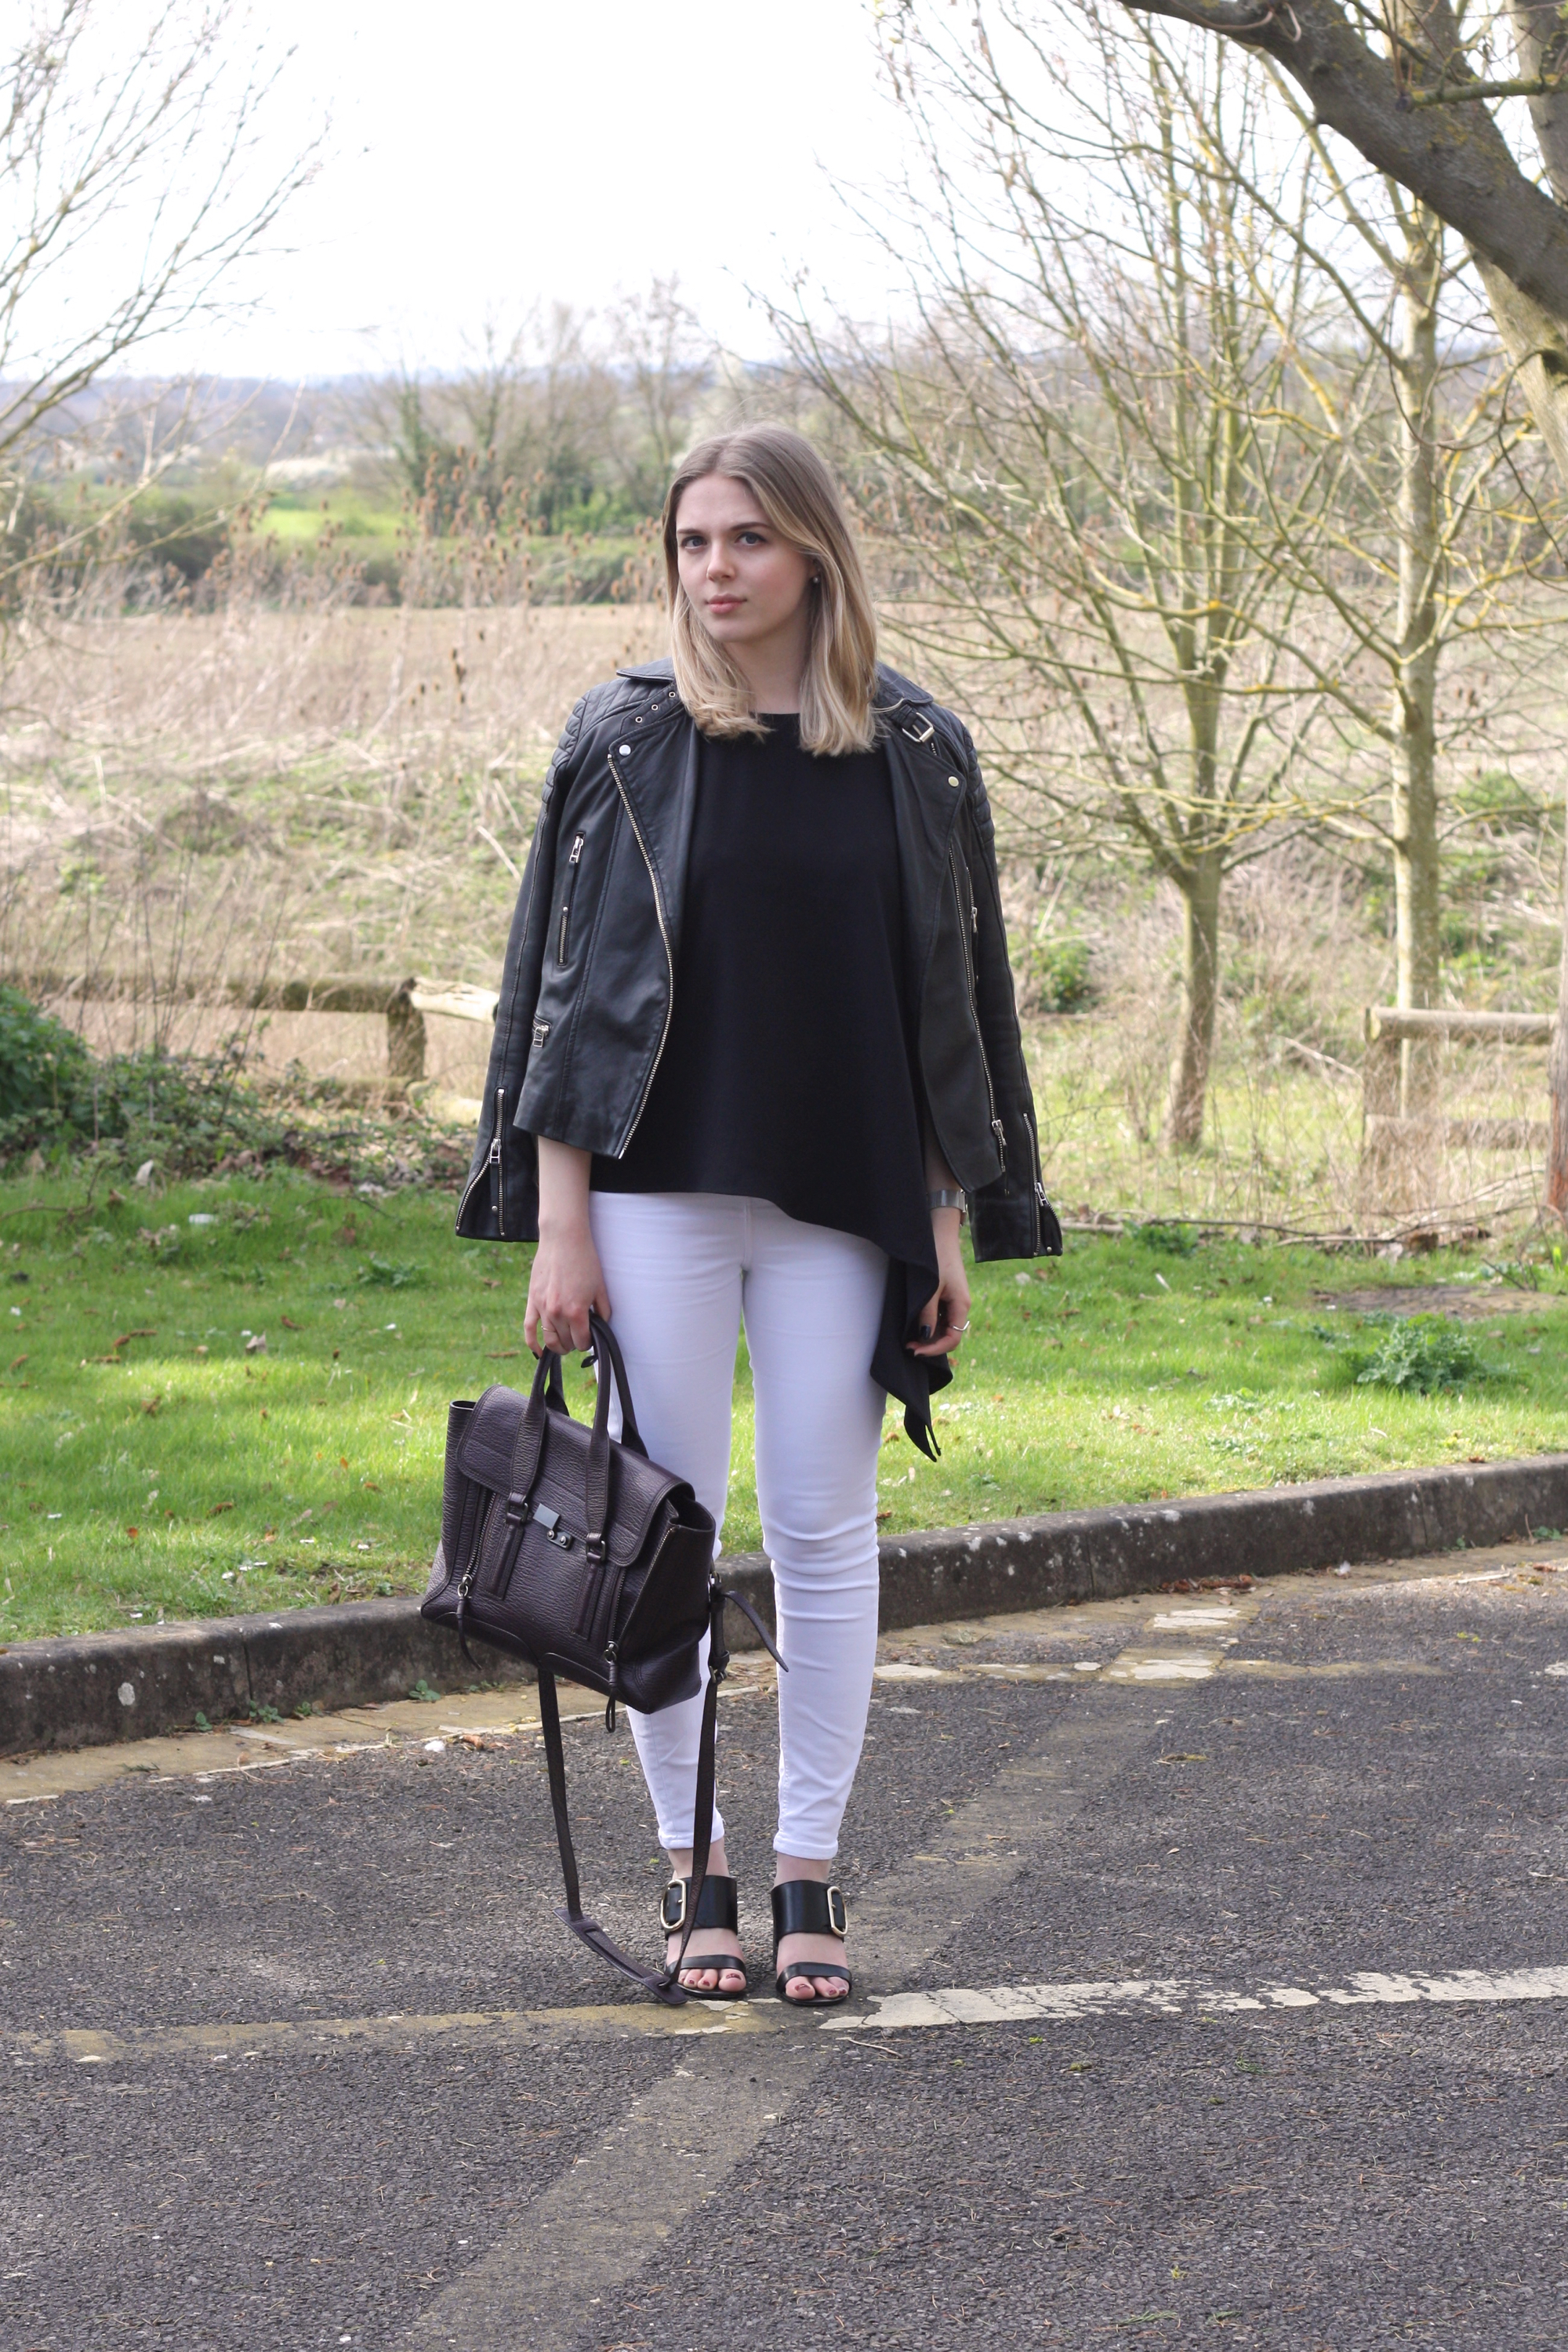 Whistles black leather jacket, Great Plains black asymmetric top and Whistles Fairhope sandals